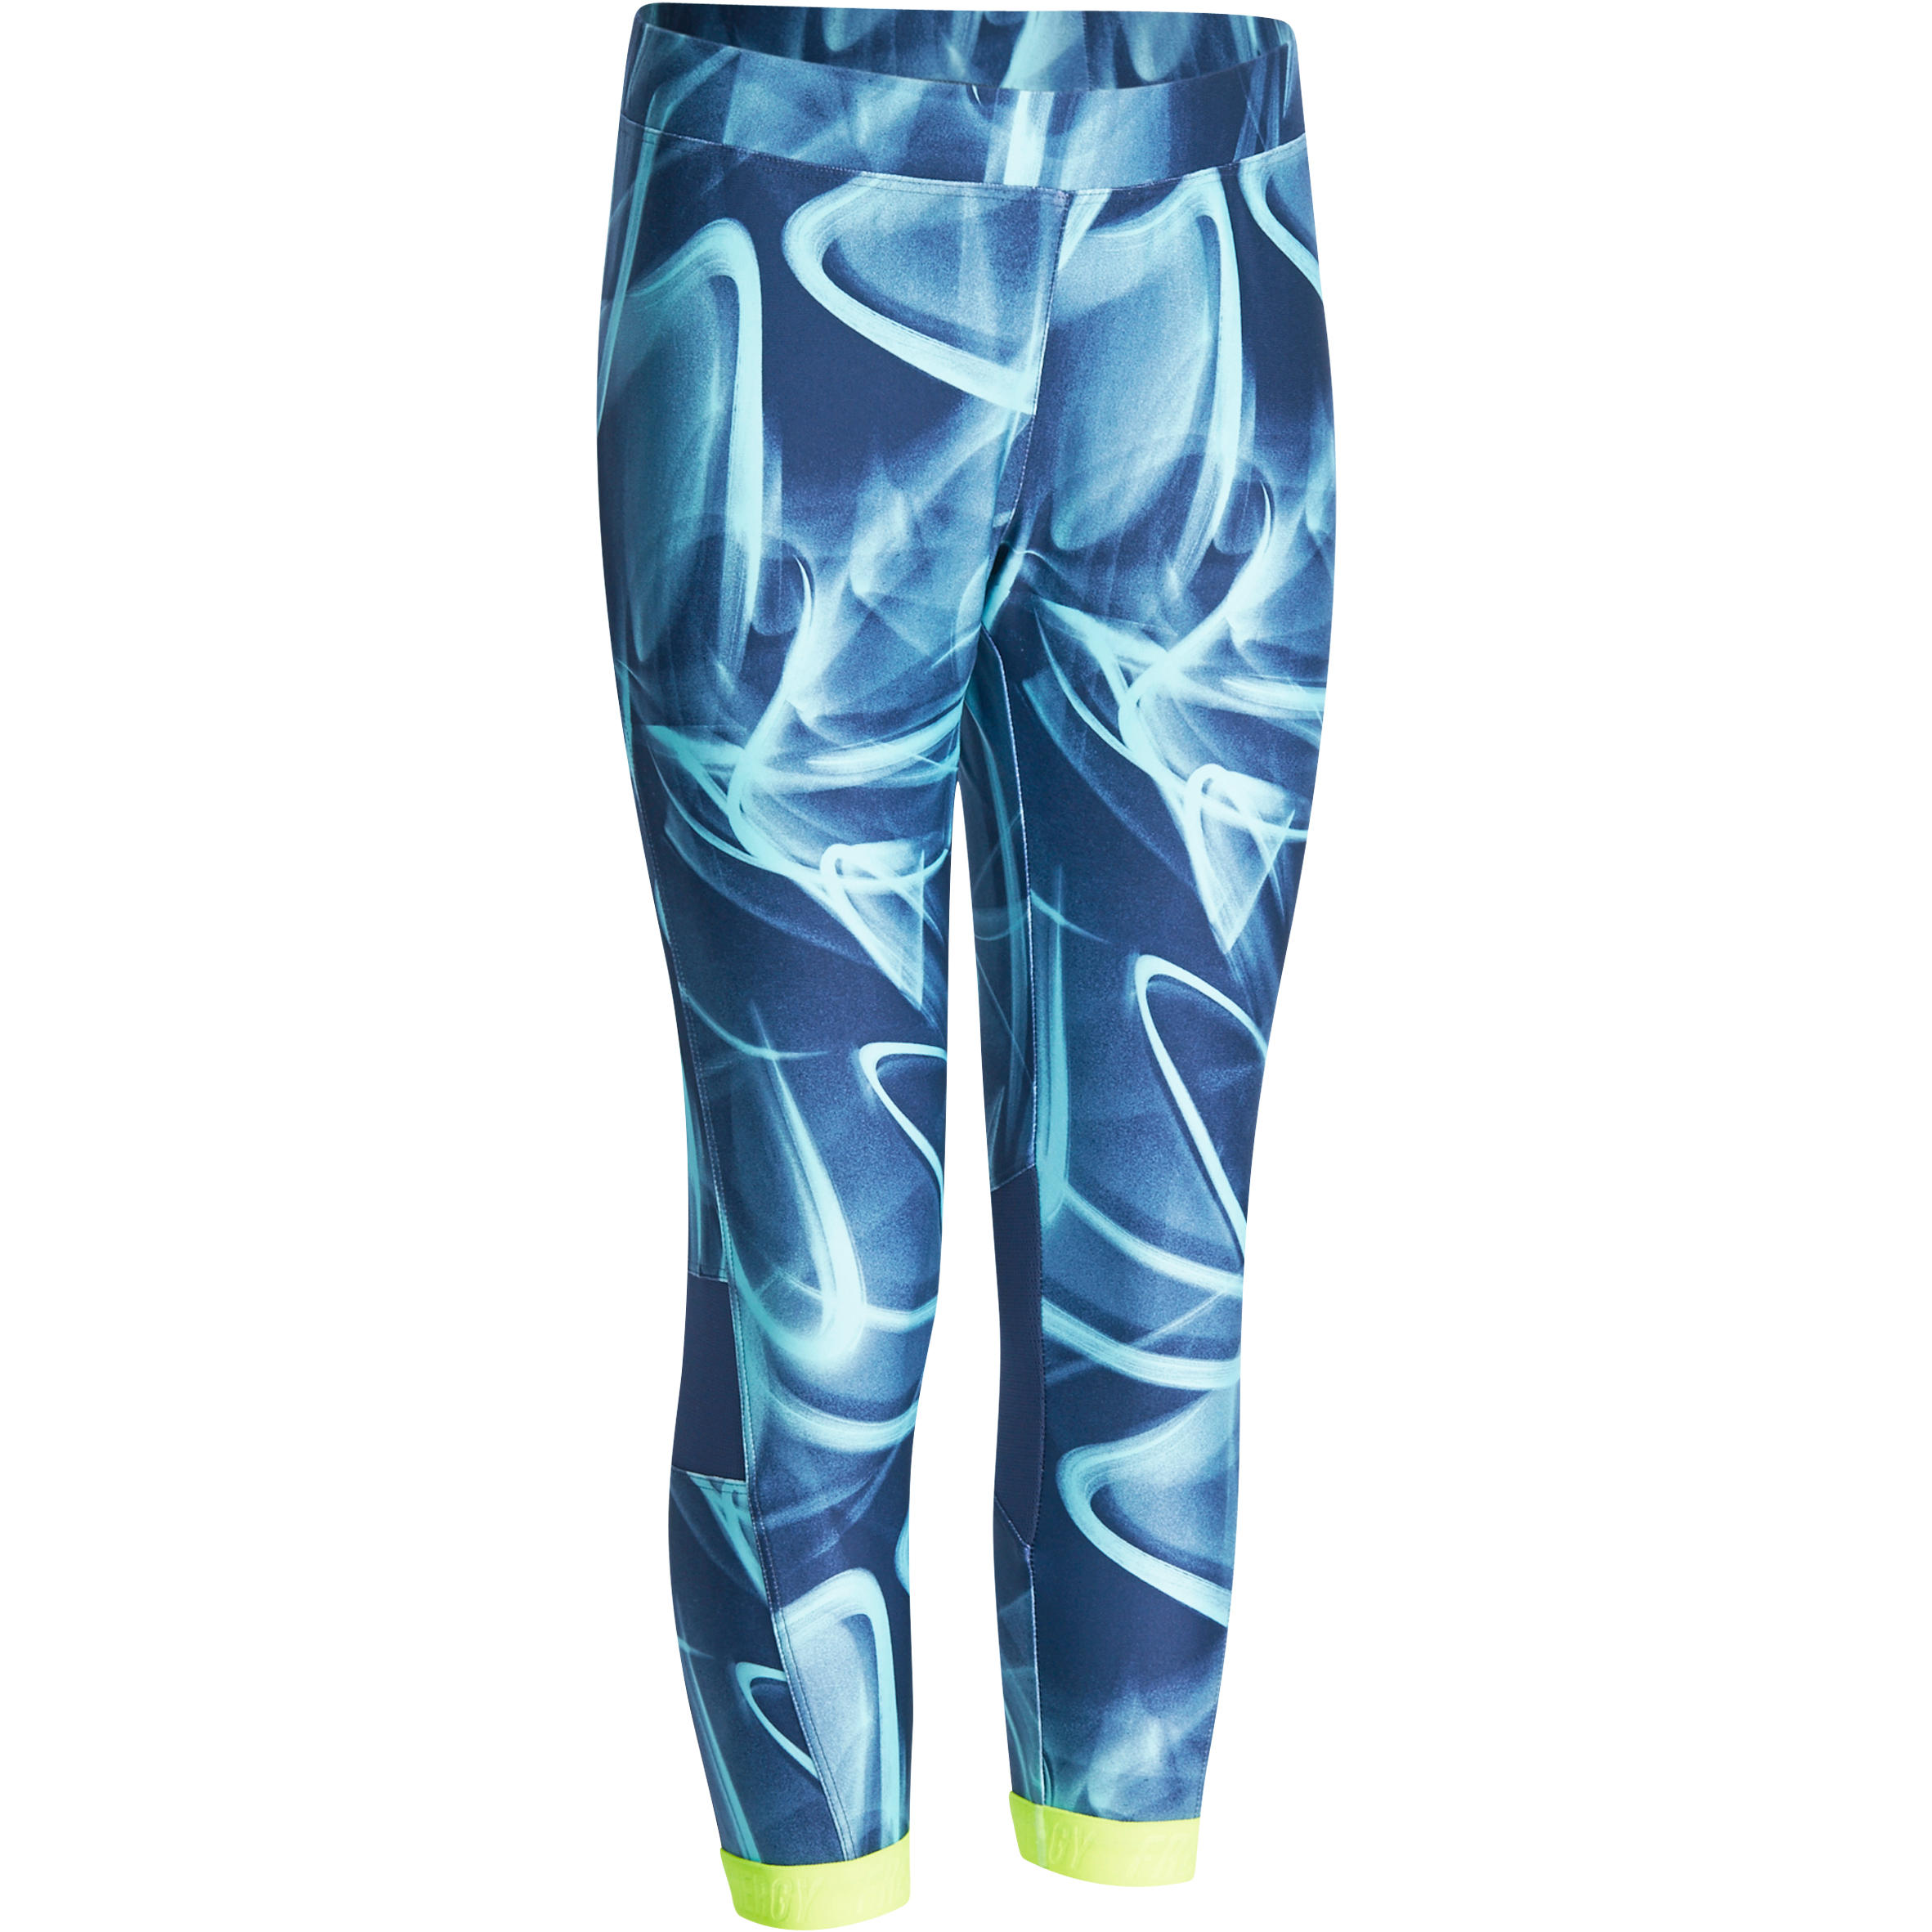 Legging 7/8 fitness...